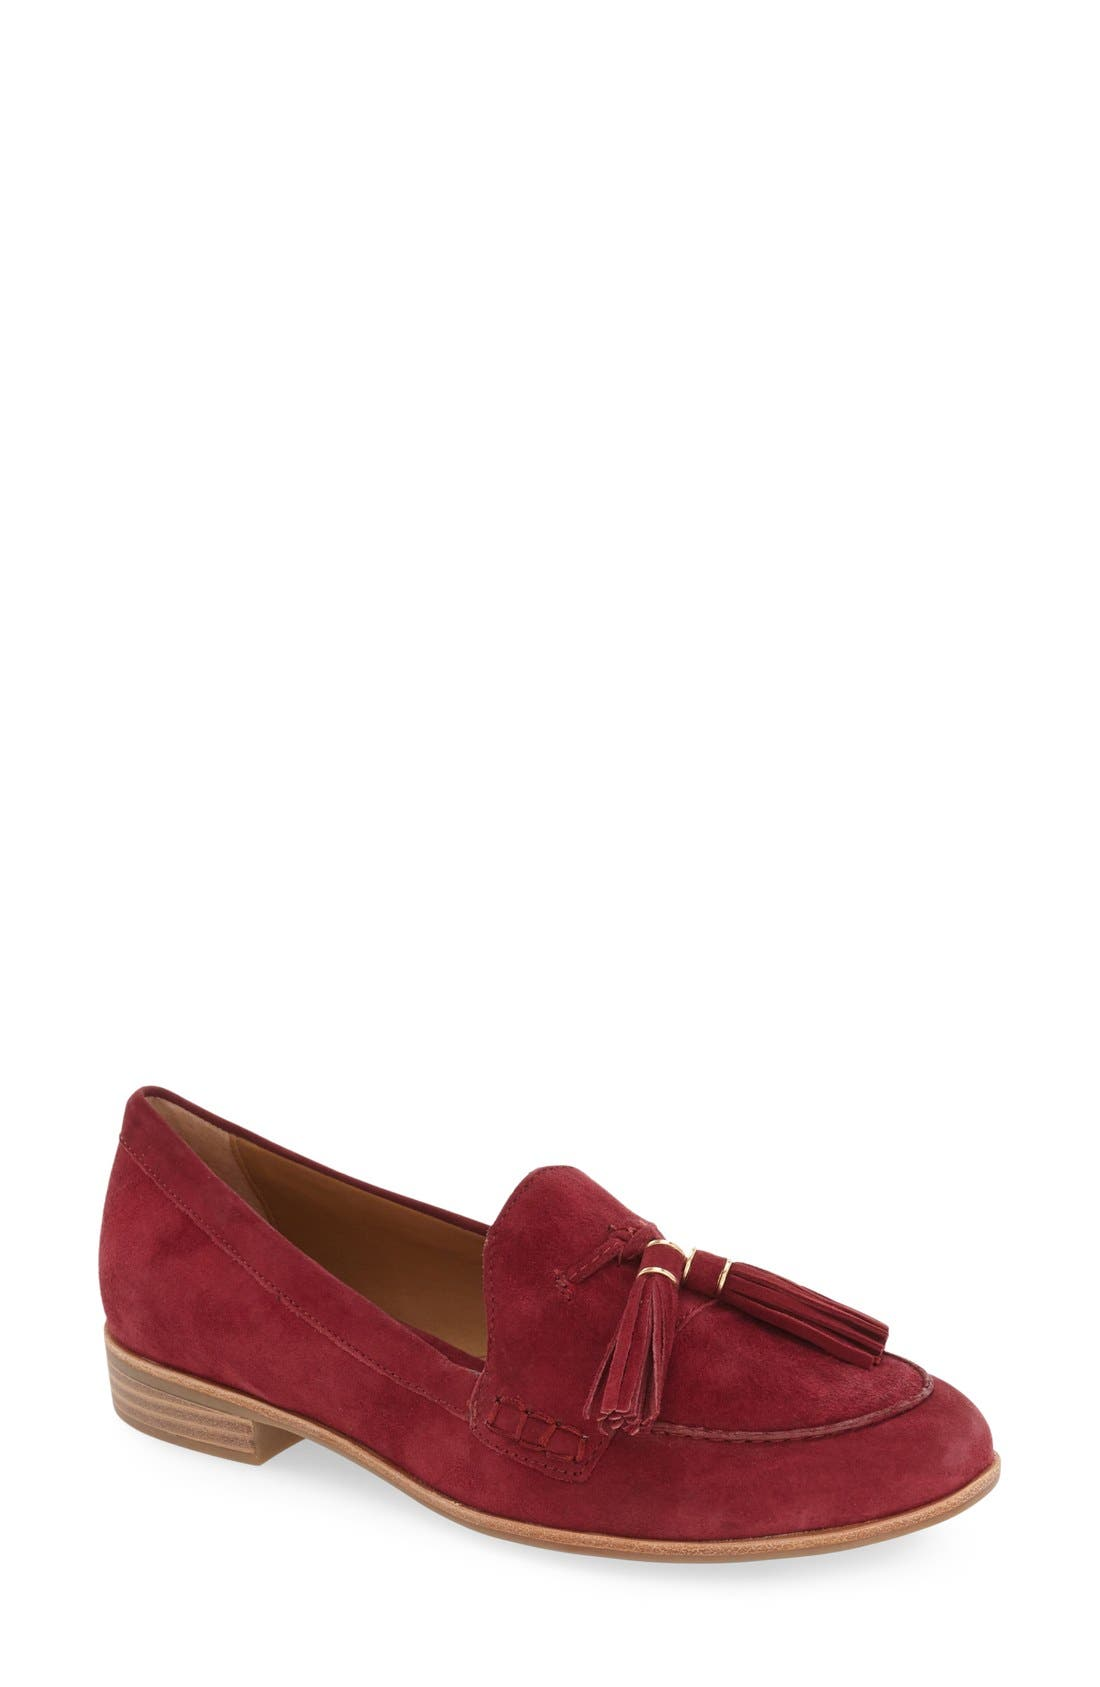 'Estelle' Tassel Loafer,                             Main thumbnail 1, color,                             Cherry Red Suede